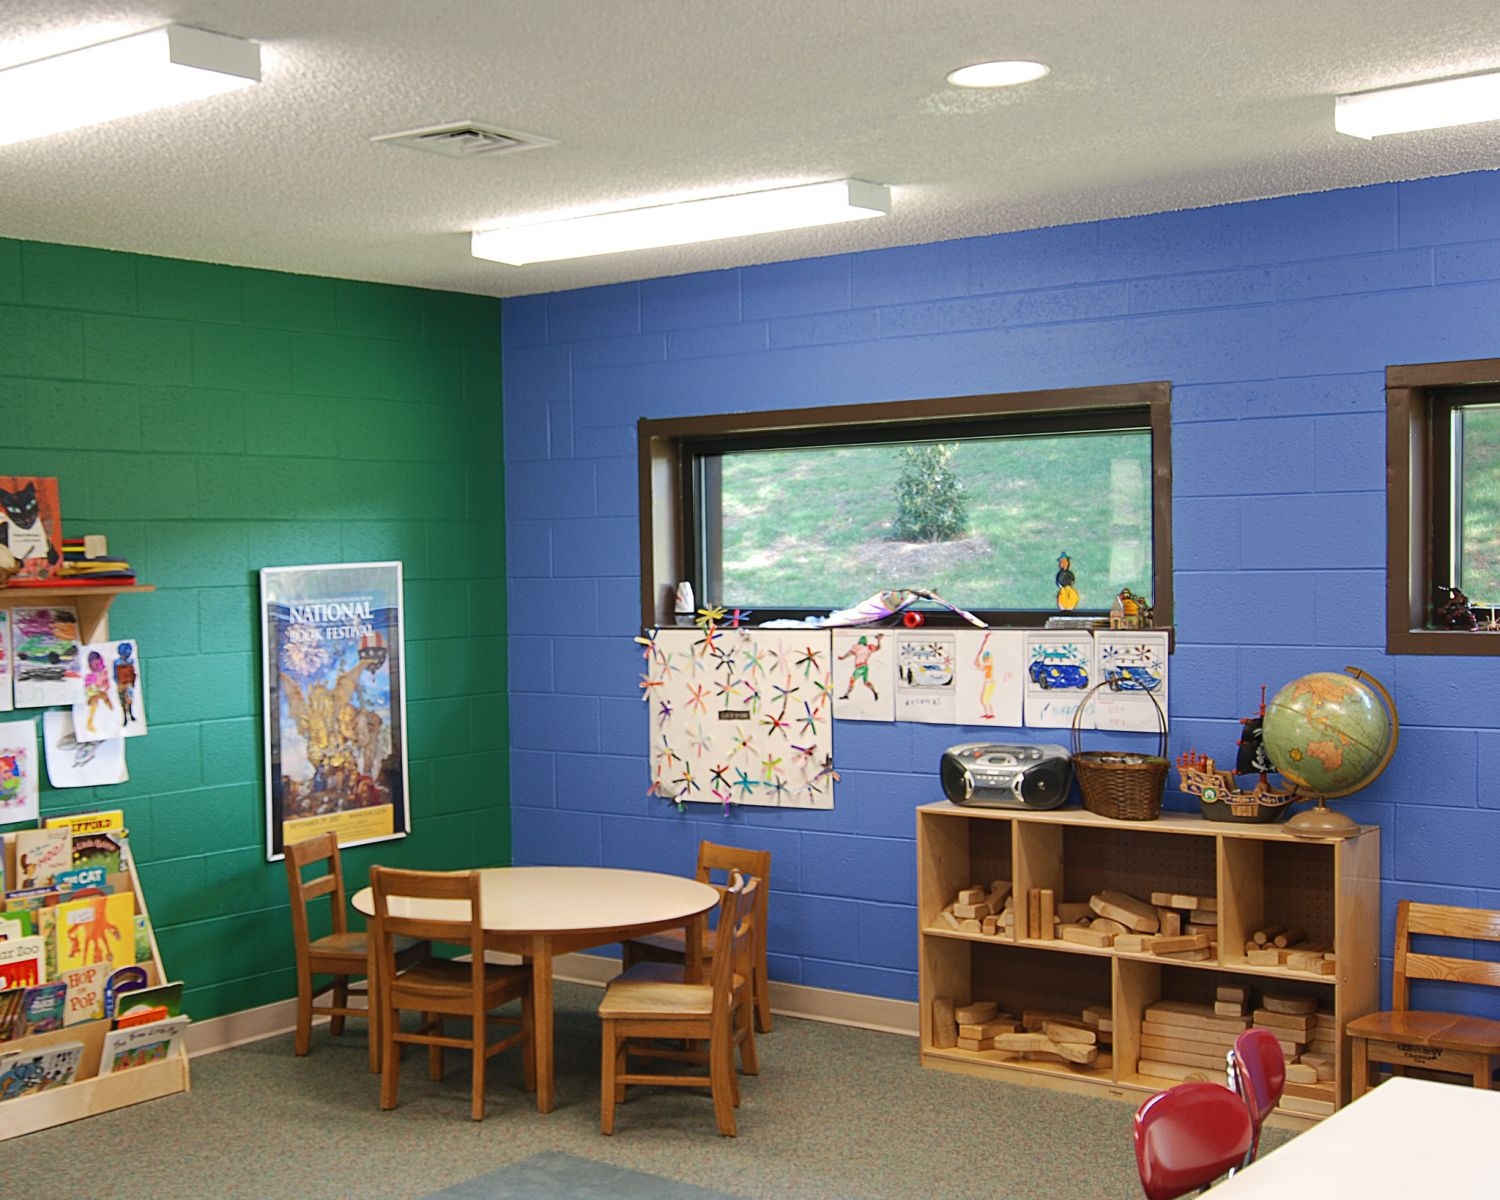 Classroom Design In Preschool ~ Principles of universal design preschool through